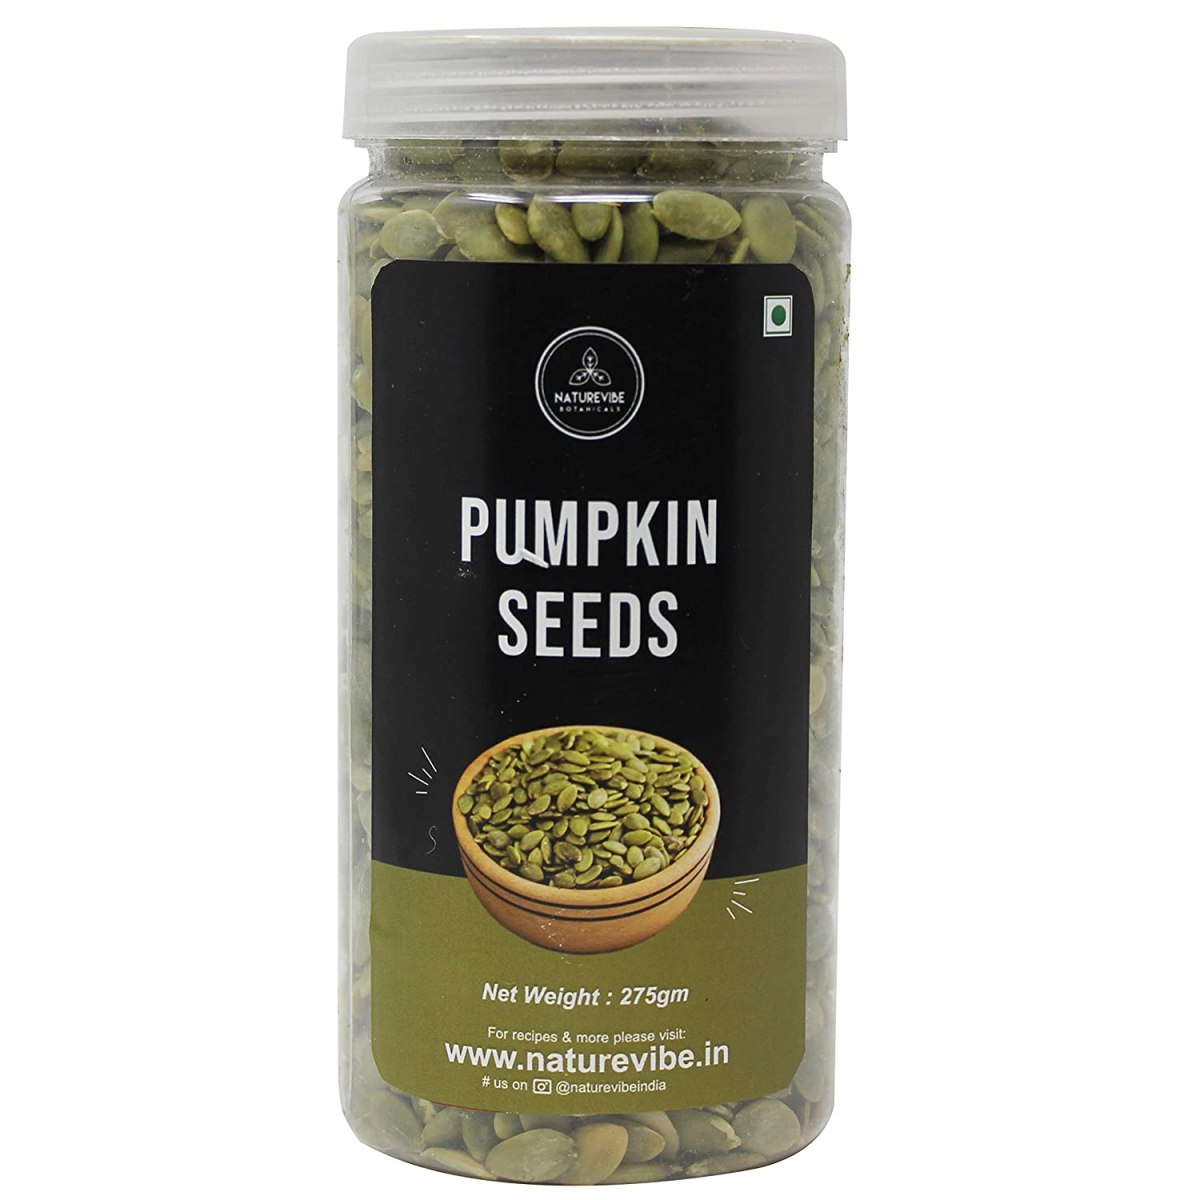 Naturevibepumpkin seeds review/chhayaonline.com